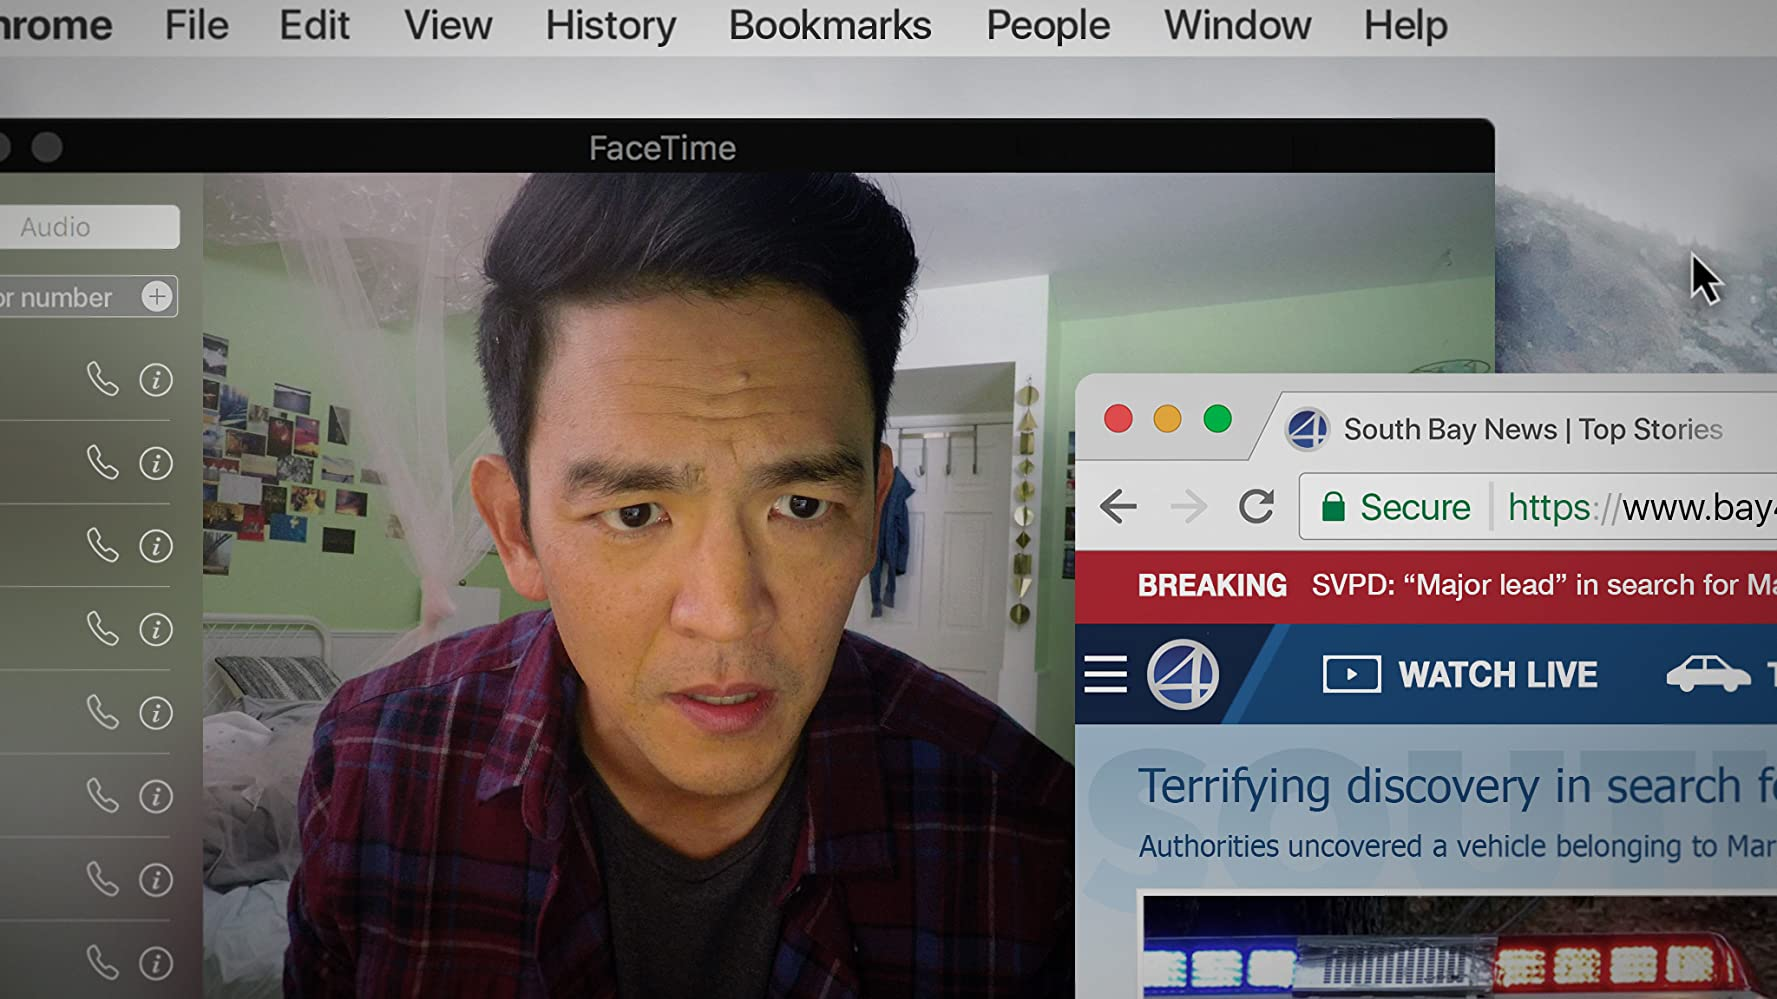 John Cho in Searching (2018)